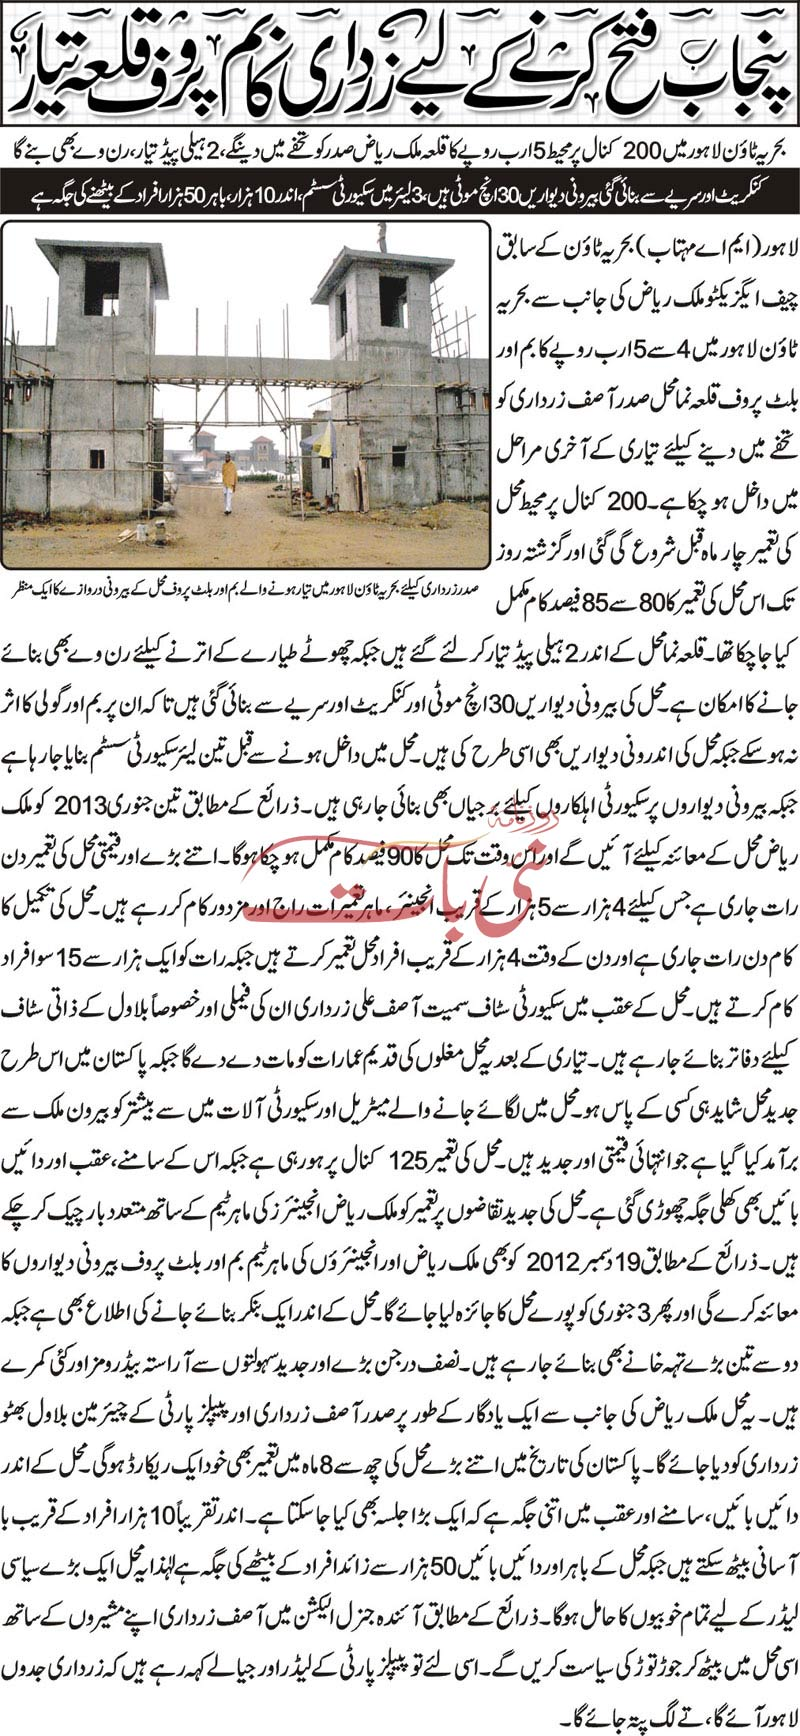 zardar2 Five Billion Rupees Bombproof Palace for Zardari in Lahore